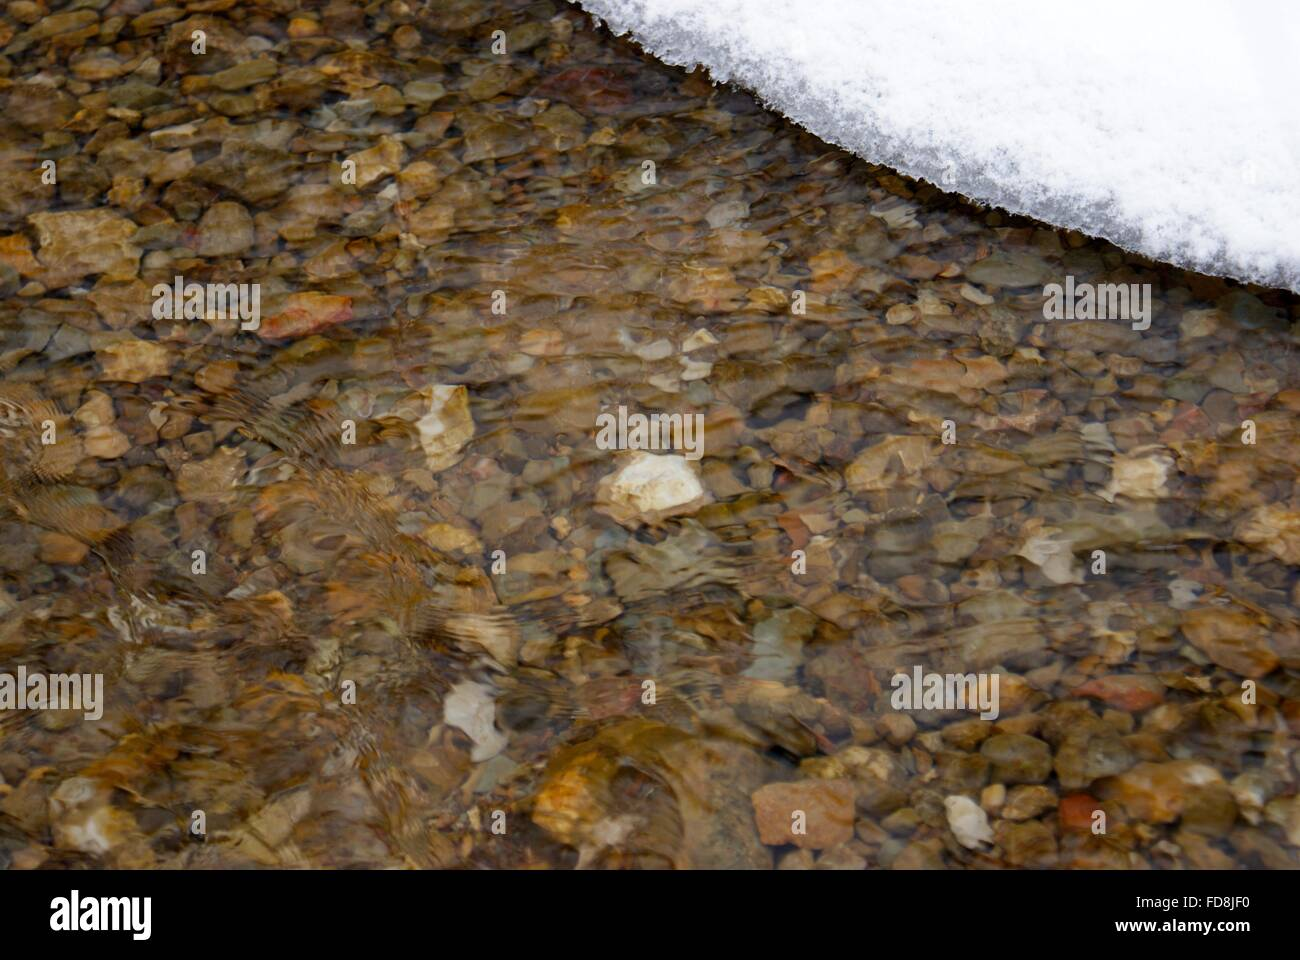 The rocky bottom of a creek running with cold brisk snow water. - Stock Image